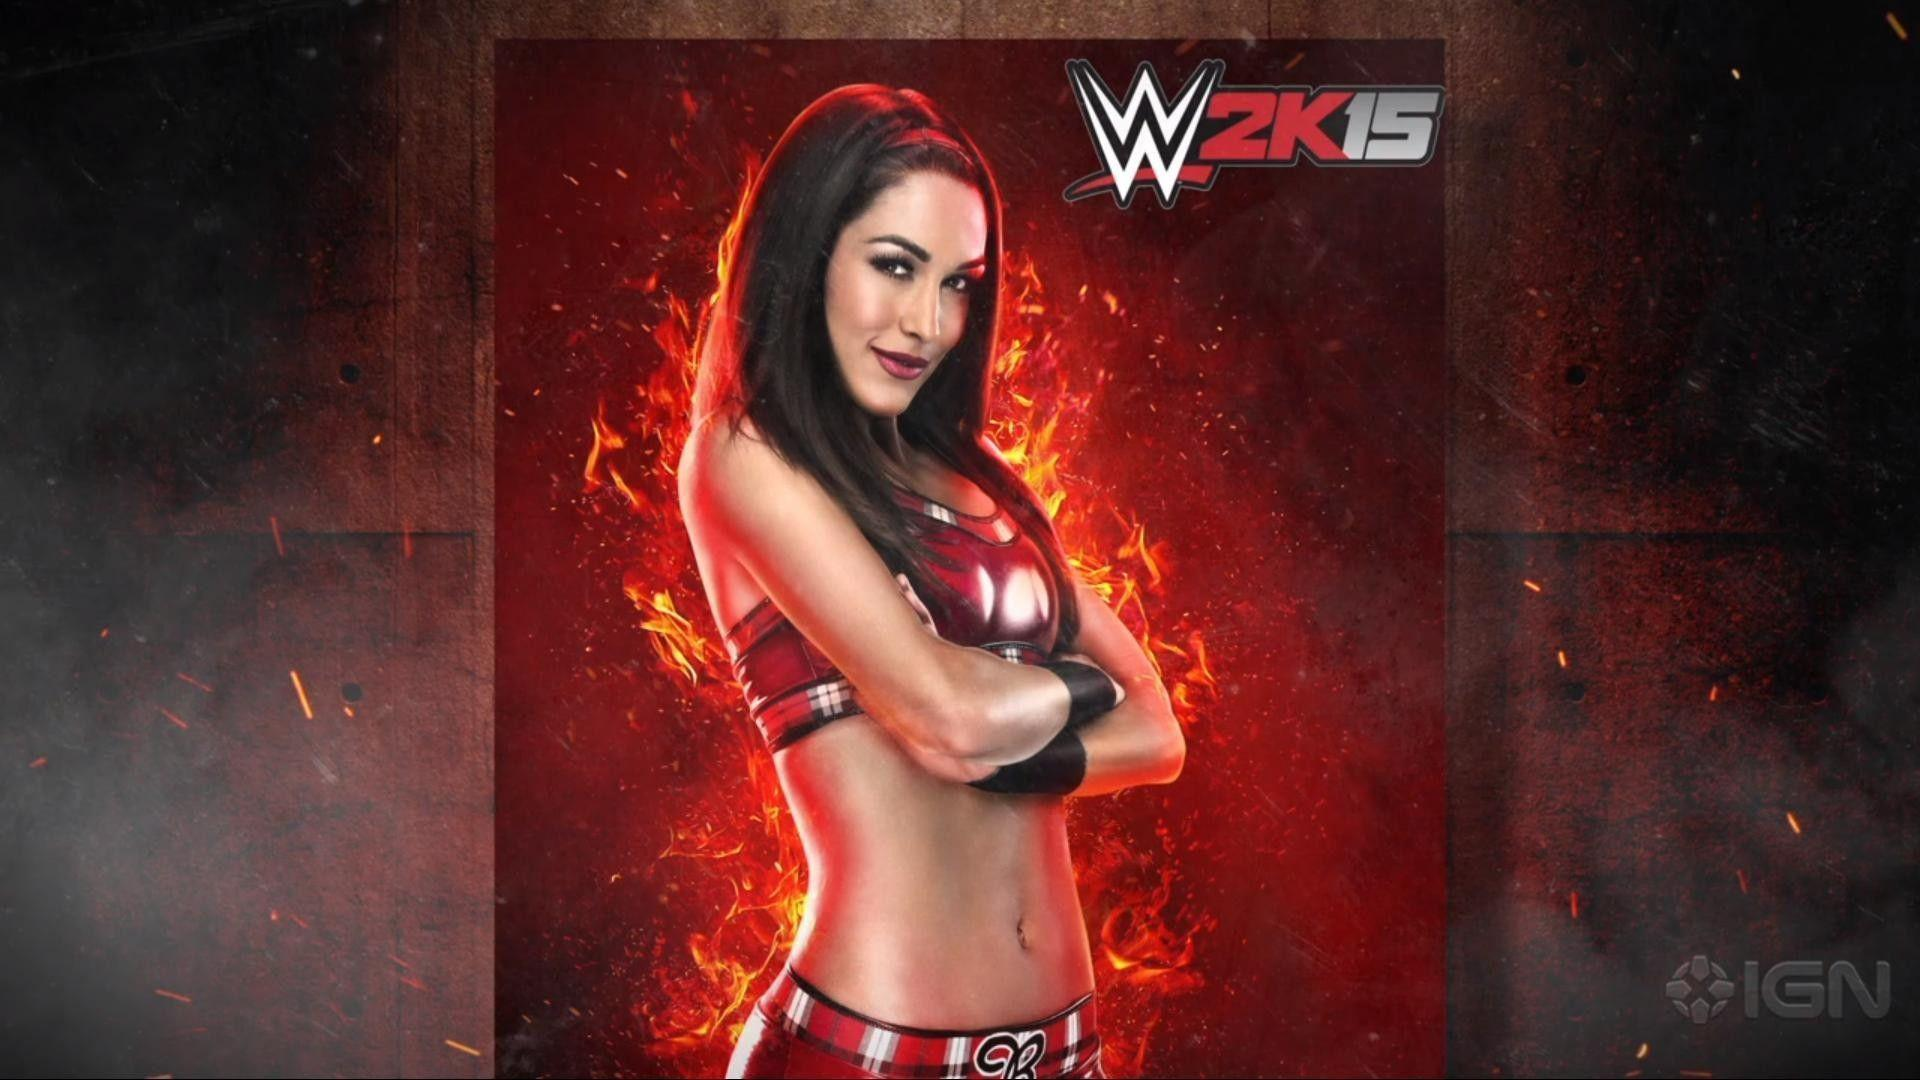 Nikki Bella 2015 HD Wallpapers - New HD Wallpapers